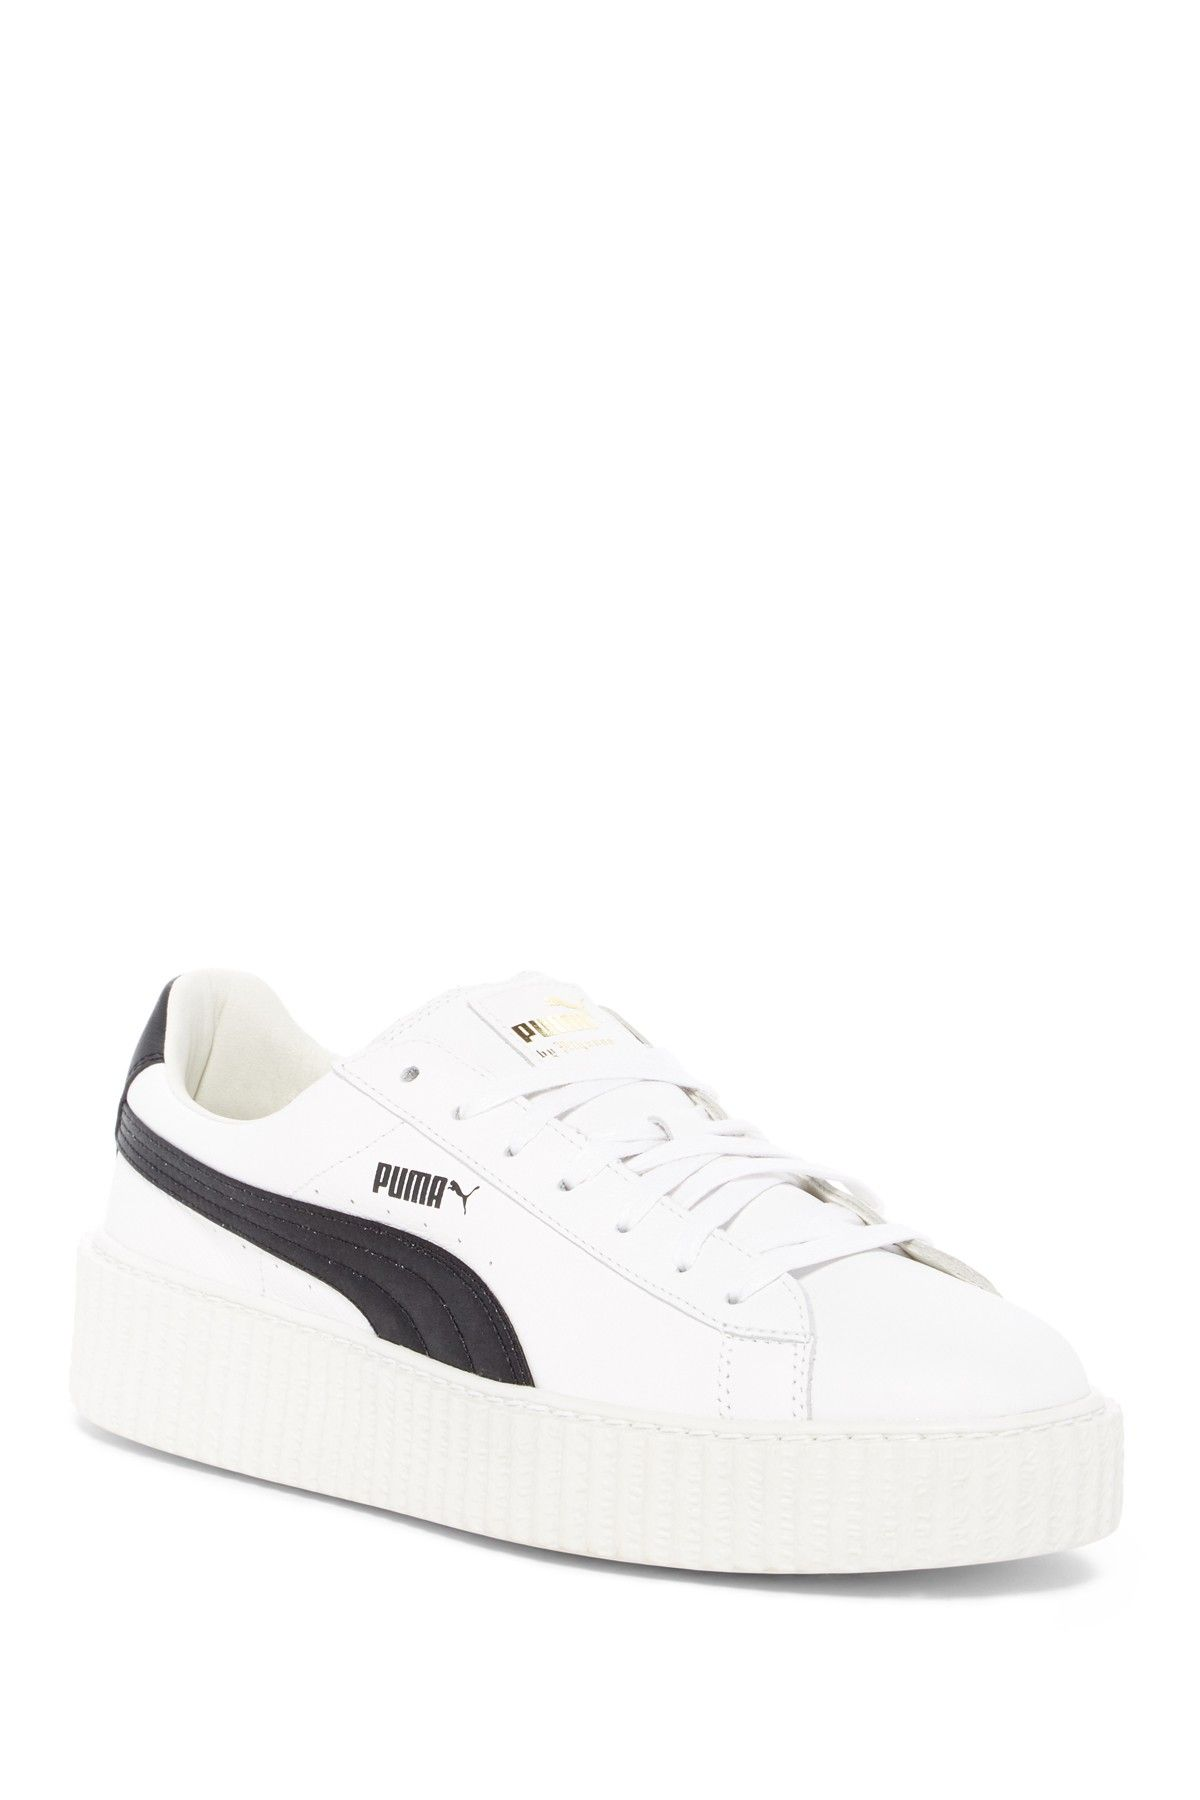 size 40 9a950 bb31f PUMA | FENTY PUMA by Rihanna Leather Creeper Sneaker | Buy ...